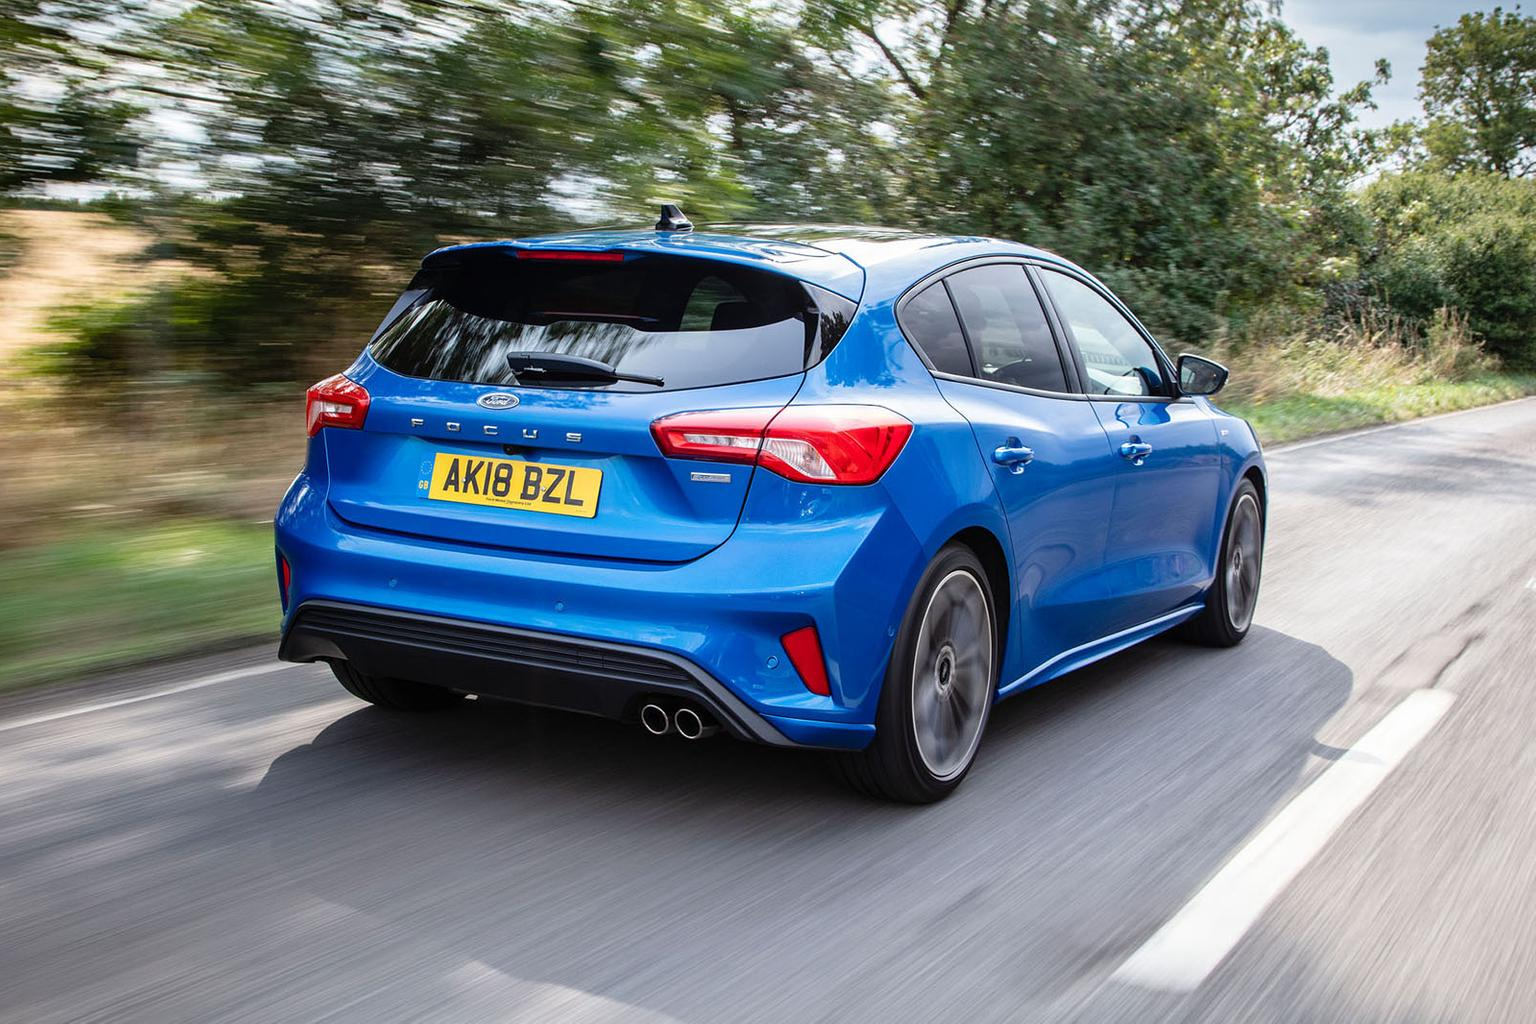 2018 Ford Focus 1.5 TDCI EcoBlue review - price, specs and release date